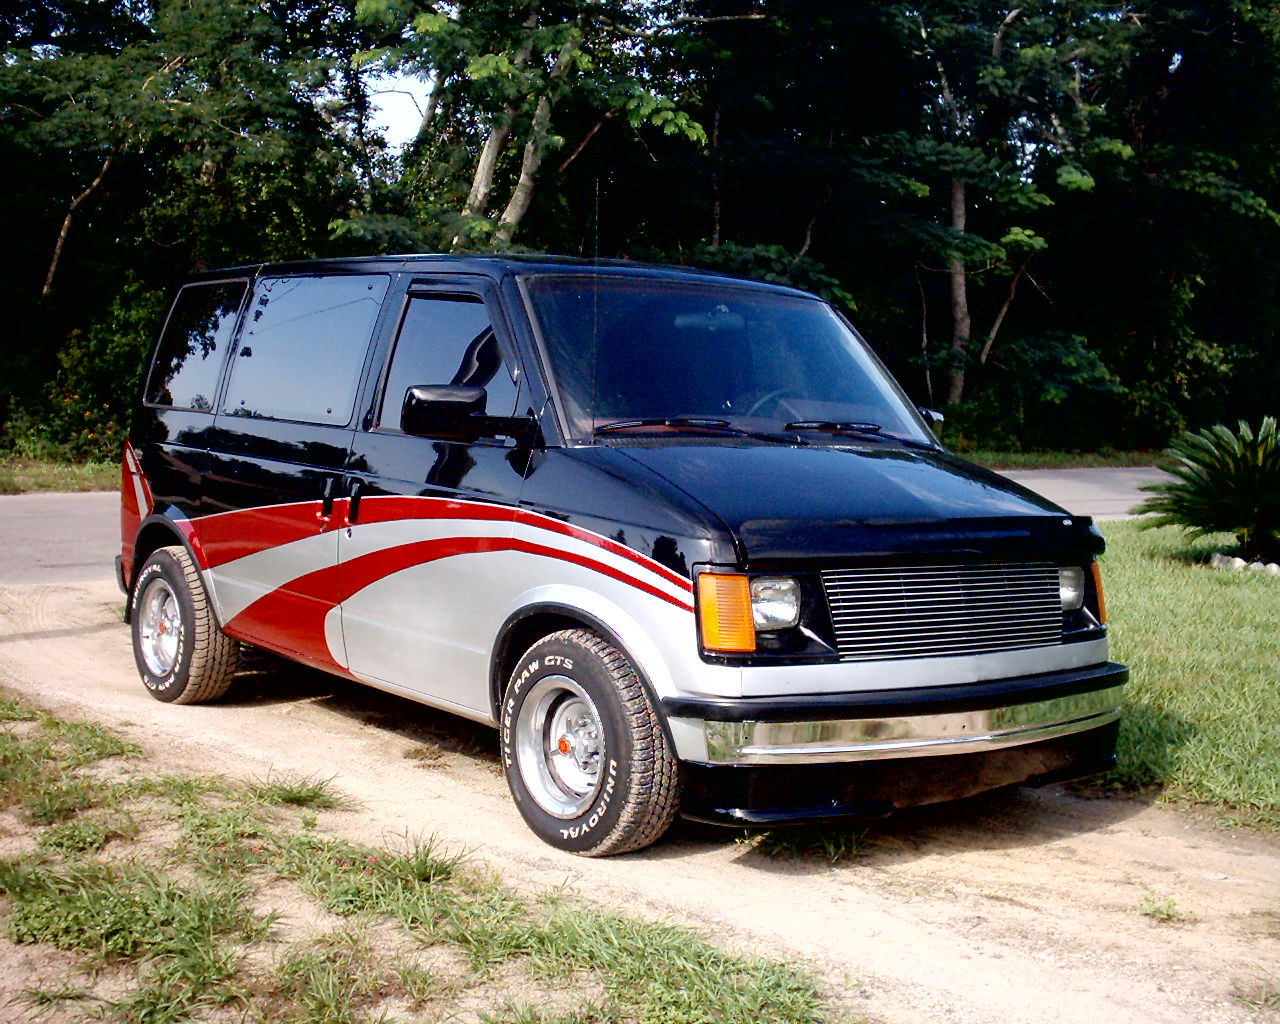 Gmc safari photo - 1